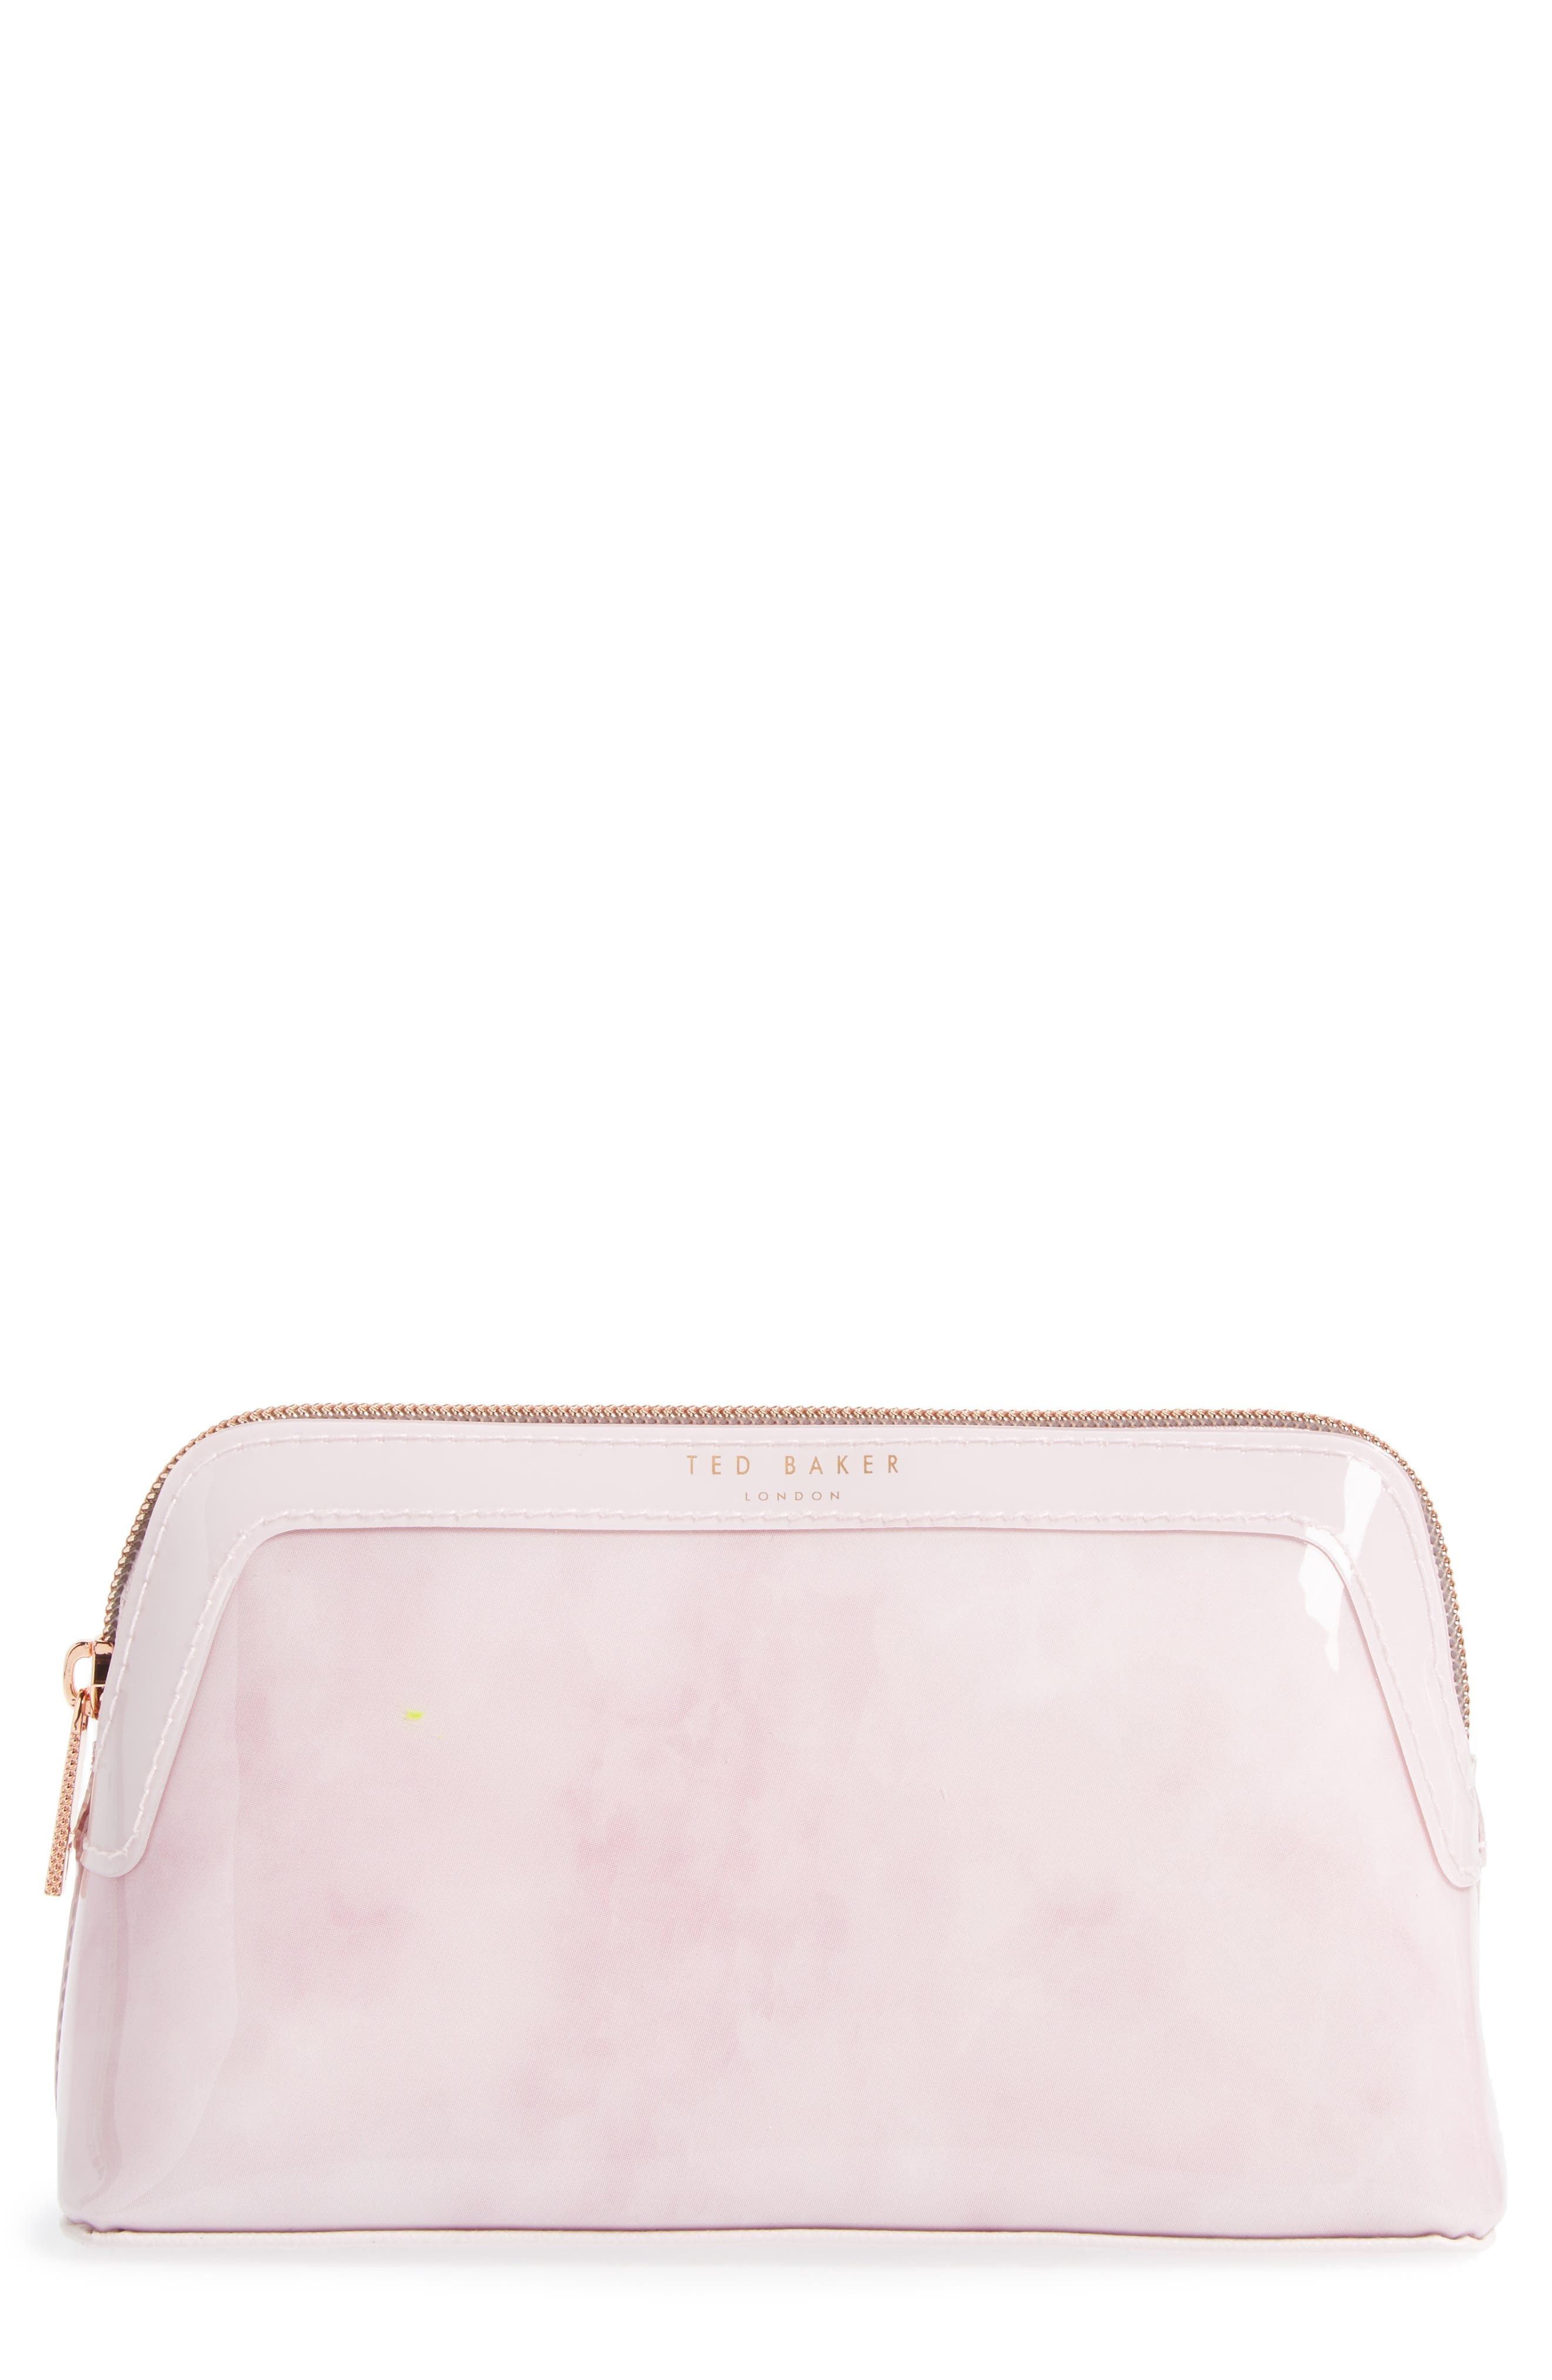 Zandra - Rose Quartz Cosmetics Bag,                             Main thumbnail 1, color,                             Nude Pink